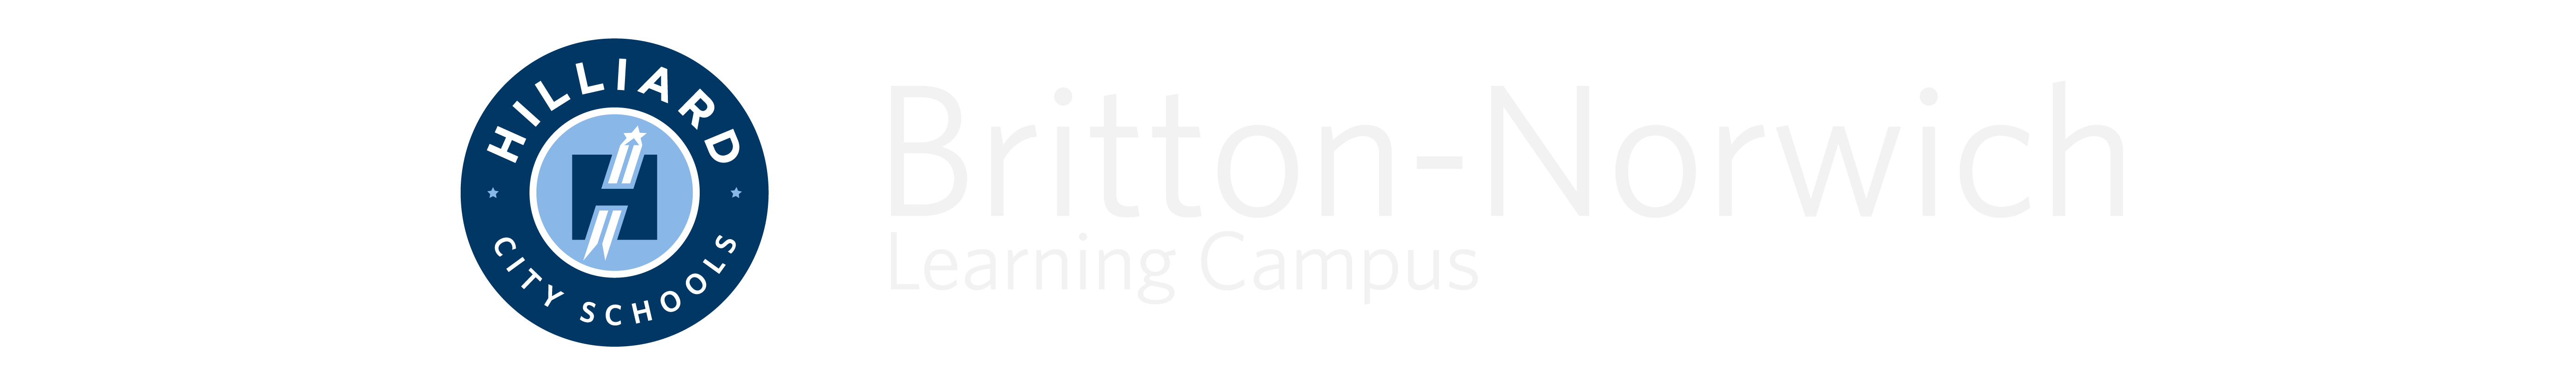 Britton-Norwich Learning Campus